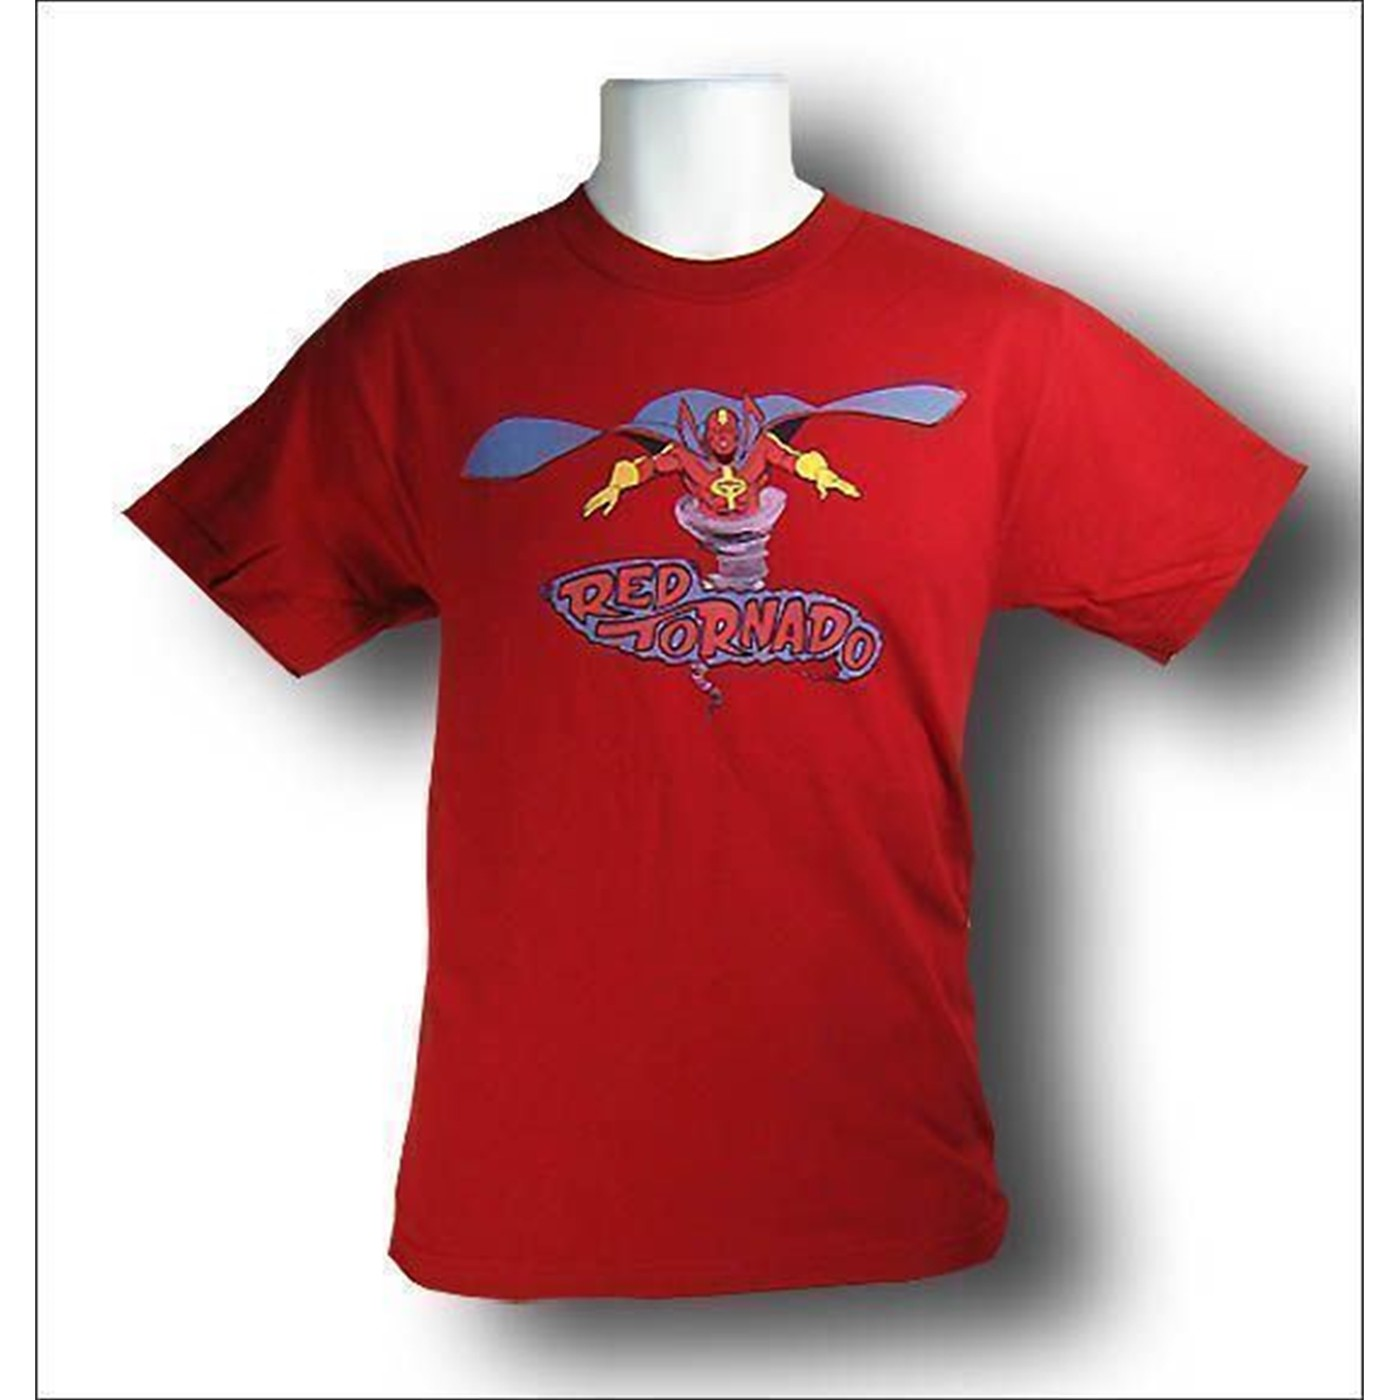 Red Tornado Retro T-Shirt